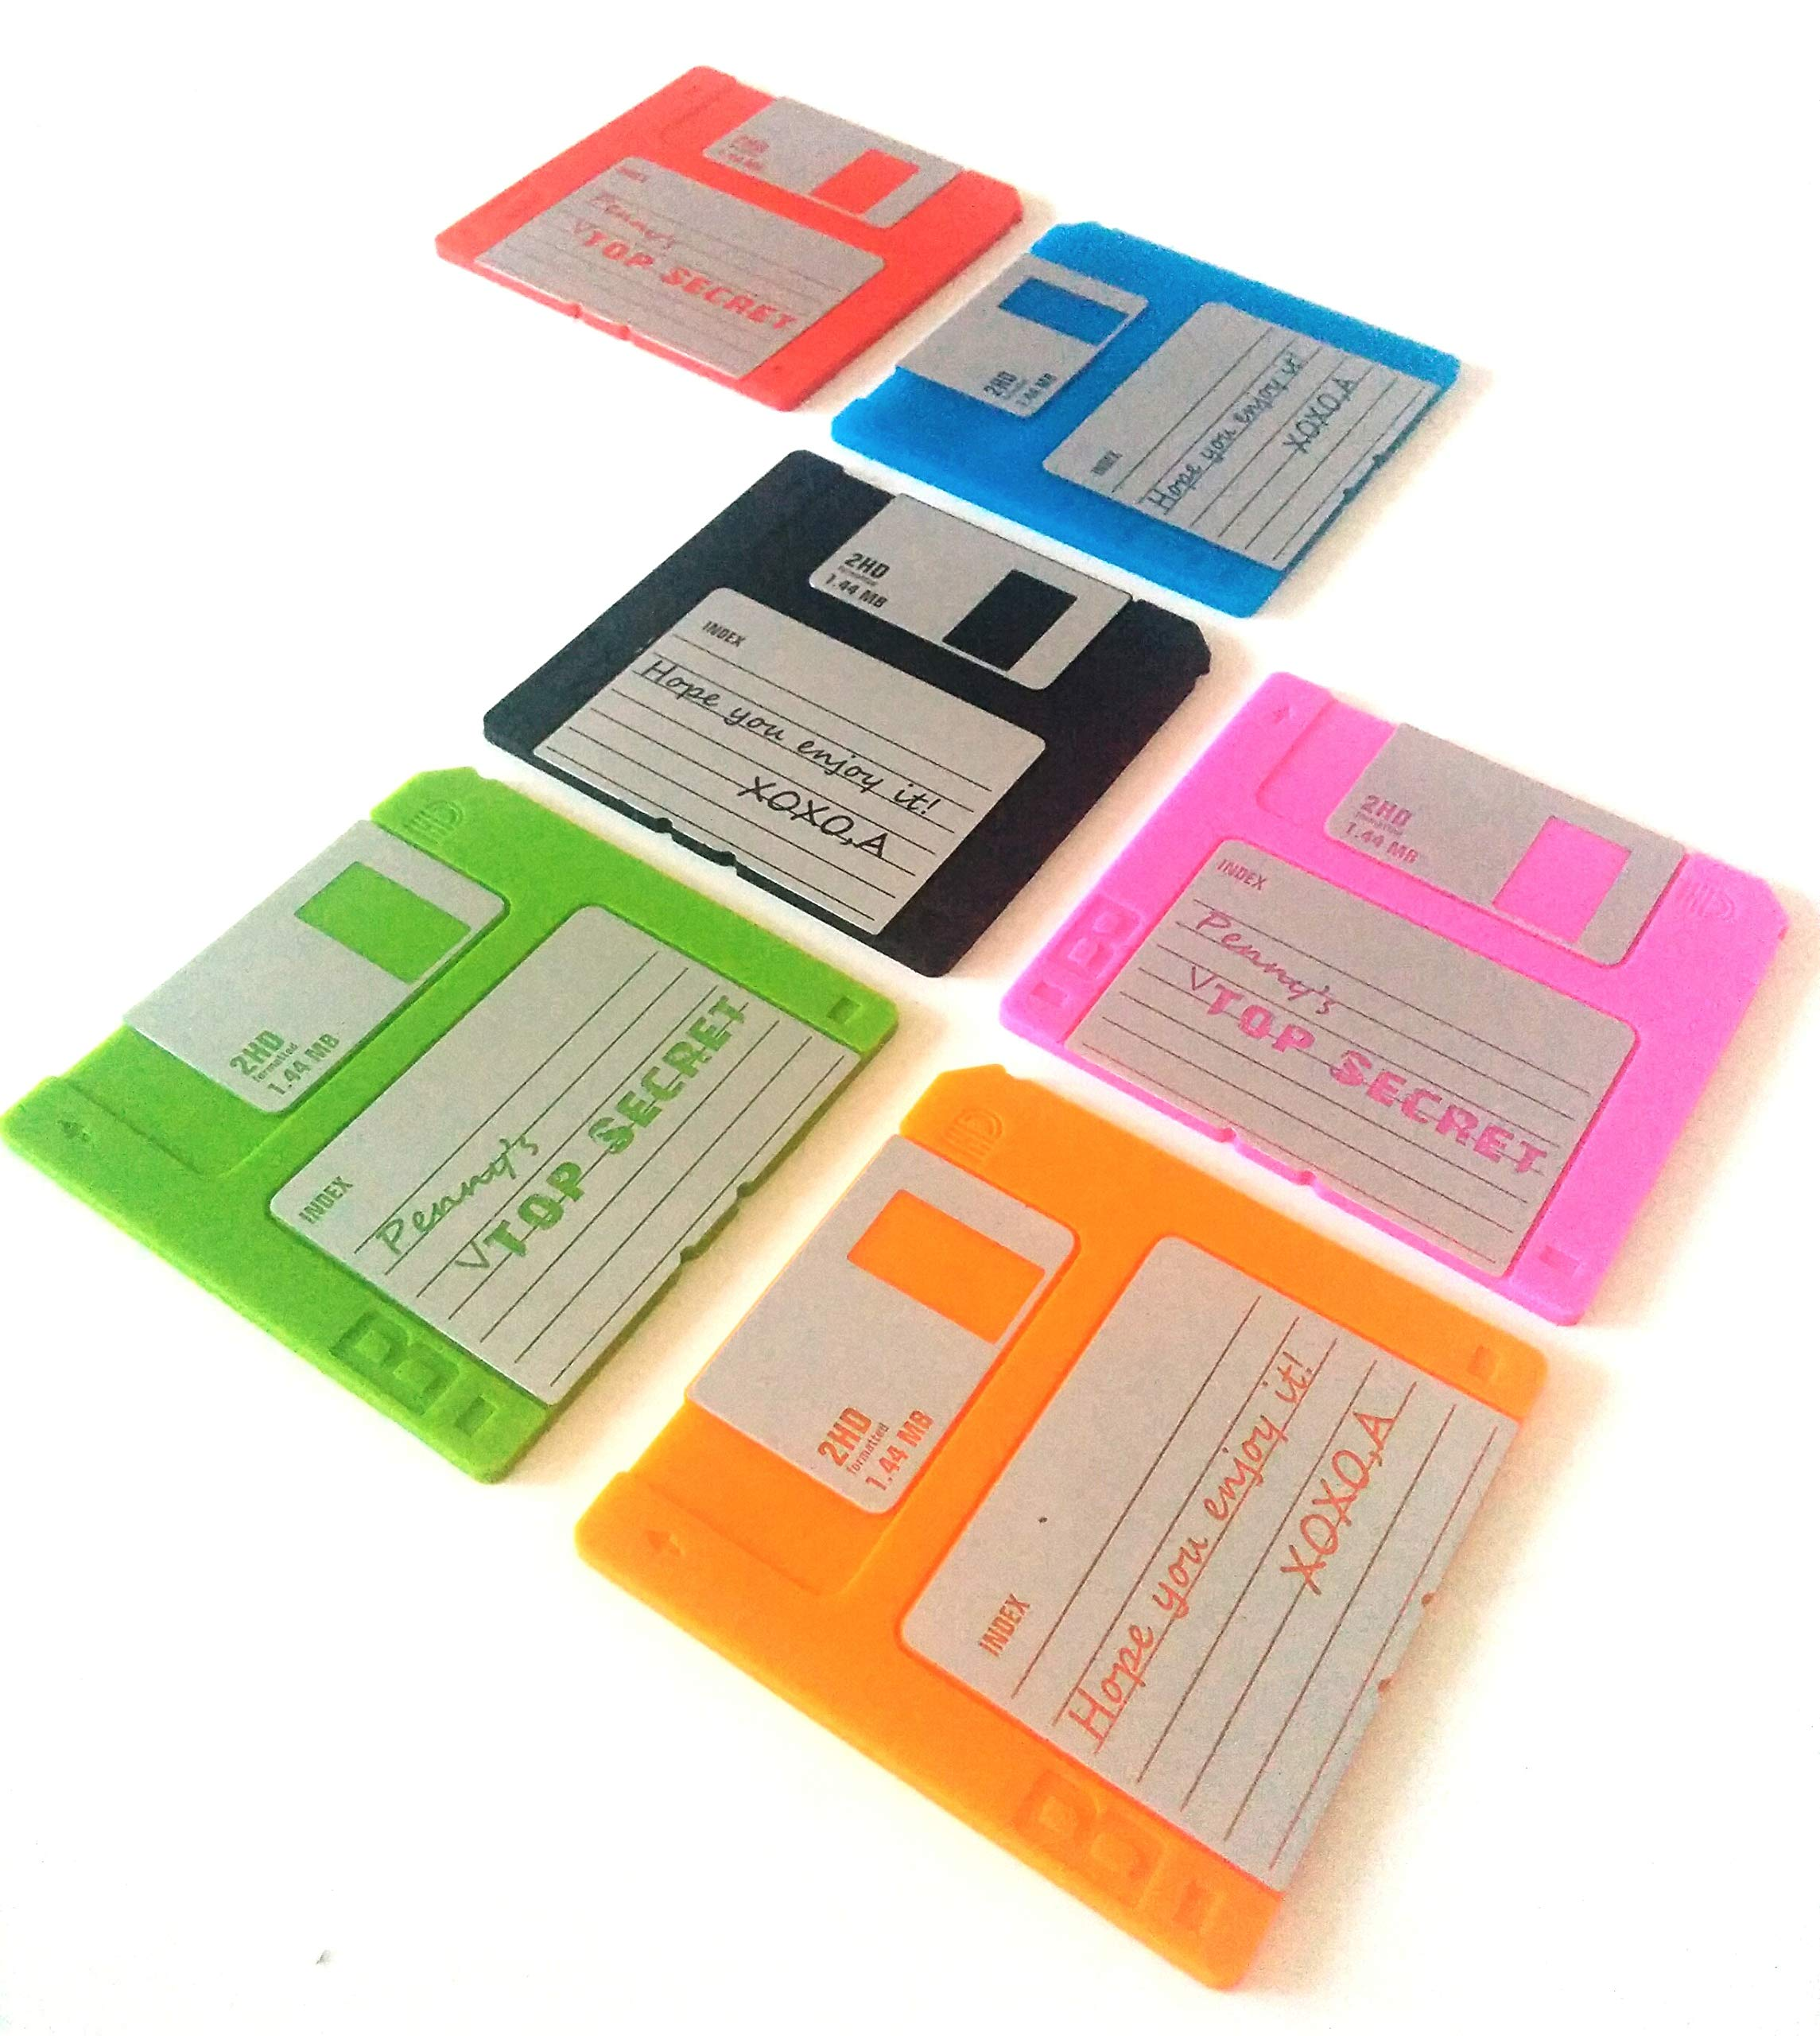 Witty Novelty Floppy Disk Coasters